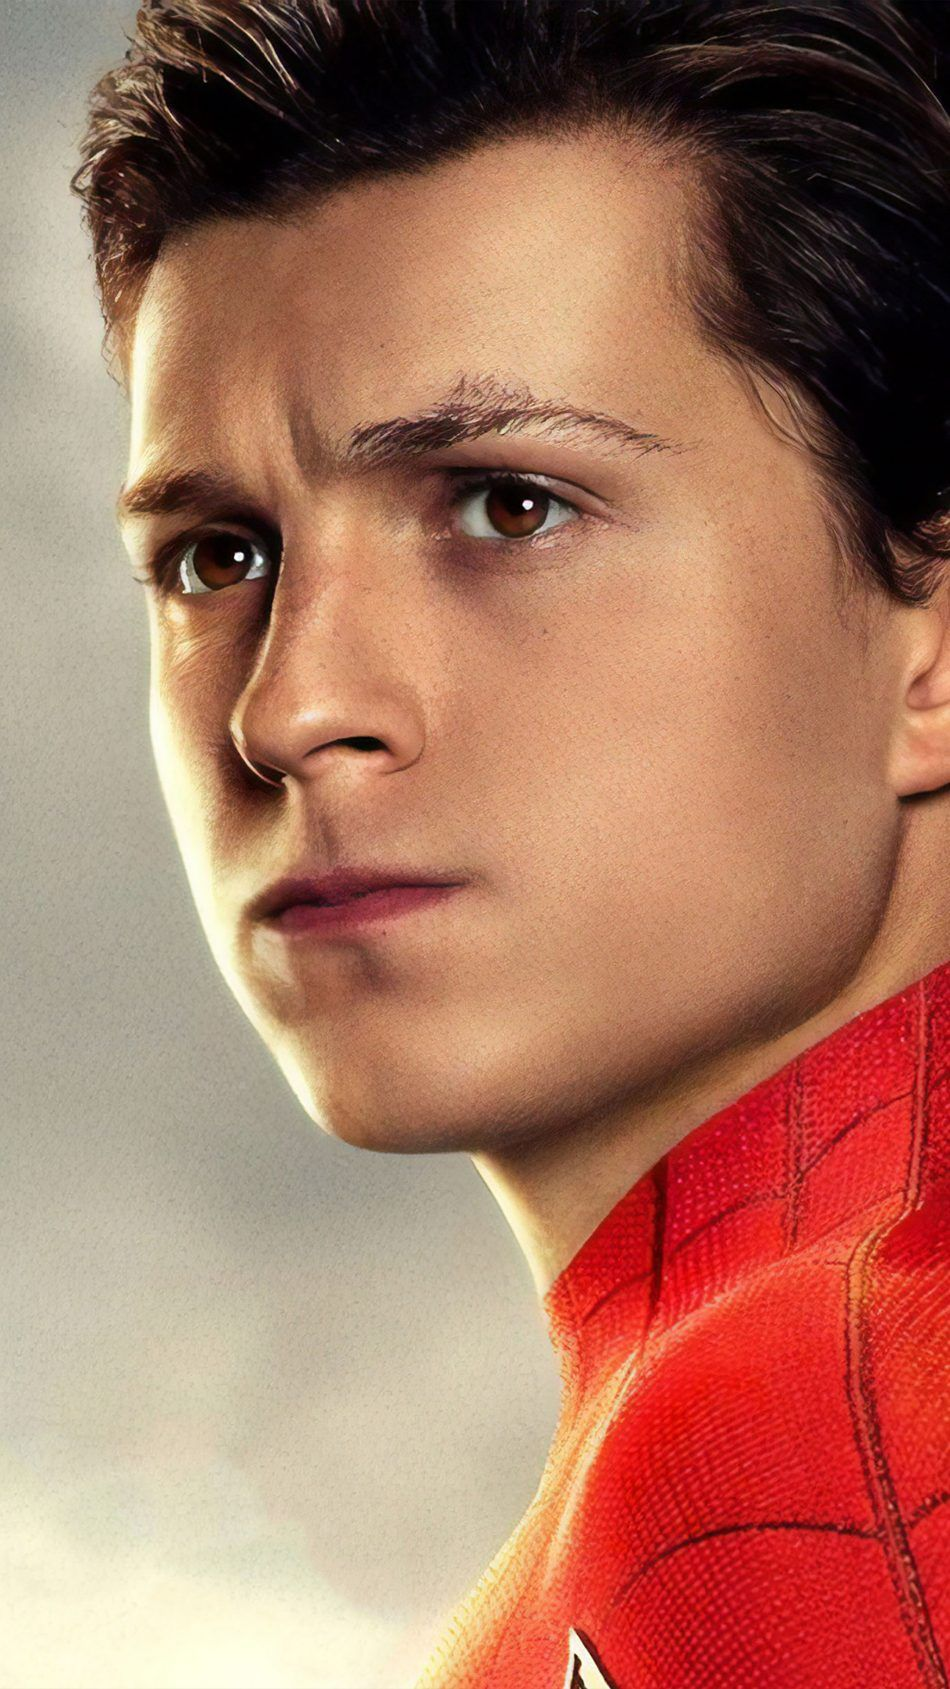 Tom Holland As Peter Parker In Spider Man Far From Home 4k Ultra Hd Mobile Wallpaper Tom Holland Tom Holland Spiderman Tom Holland Peter Parker